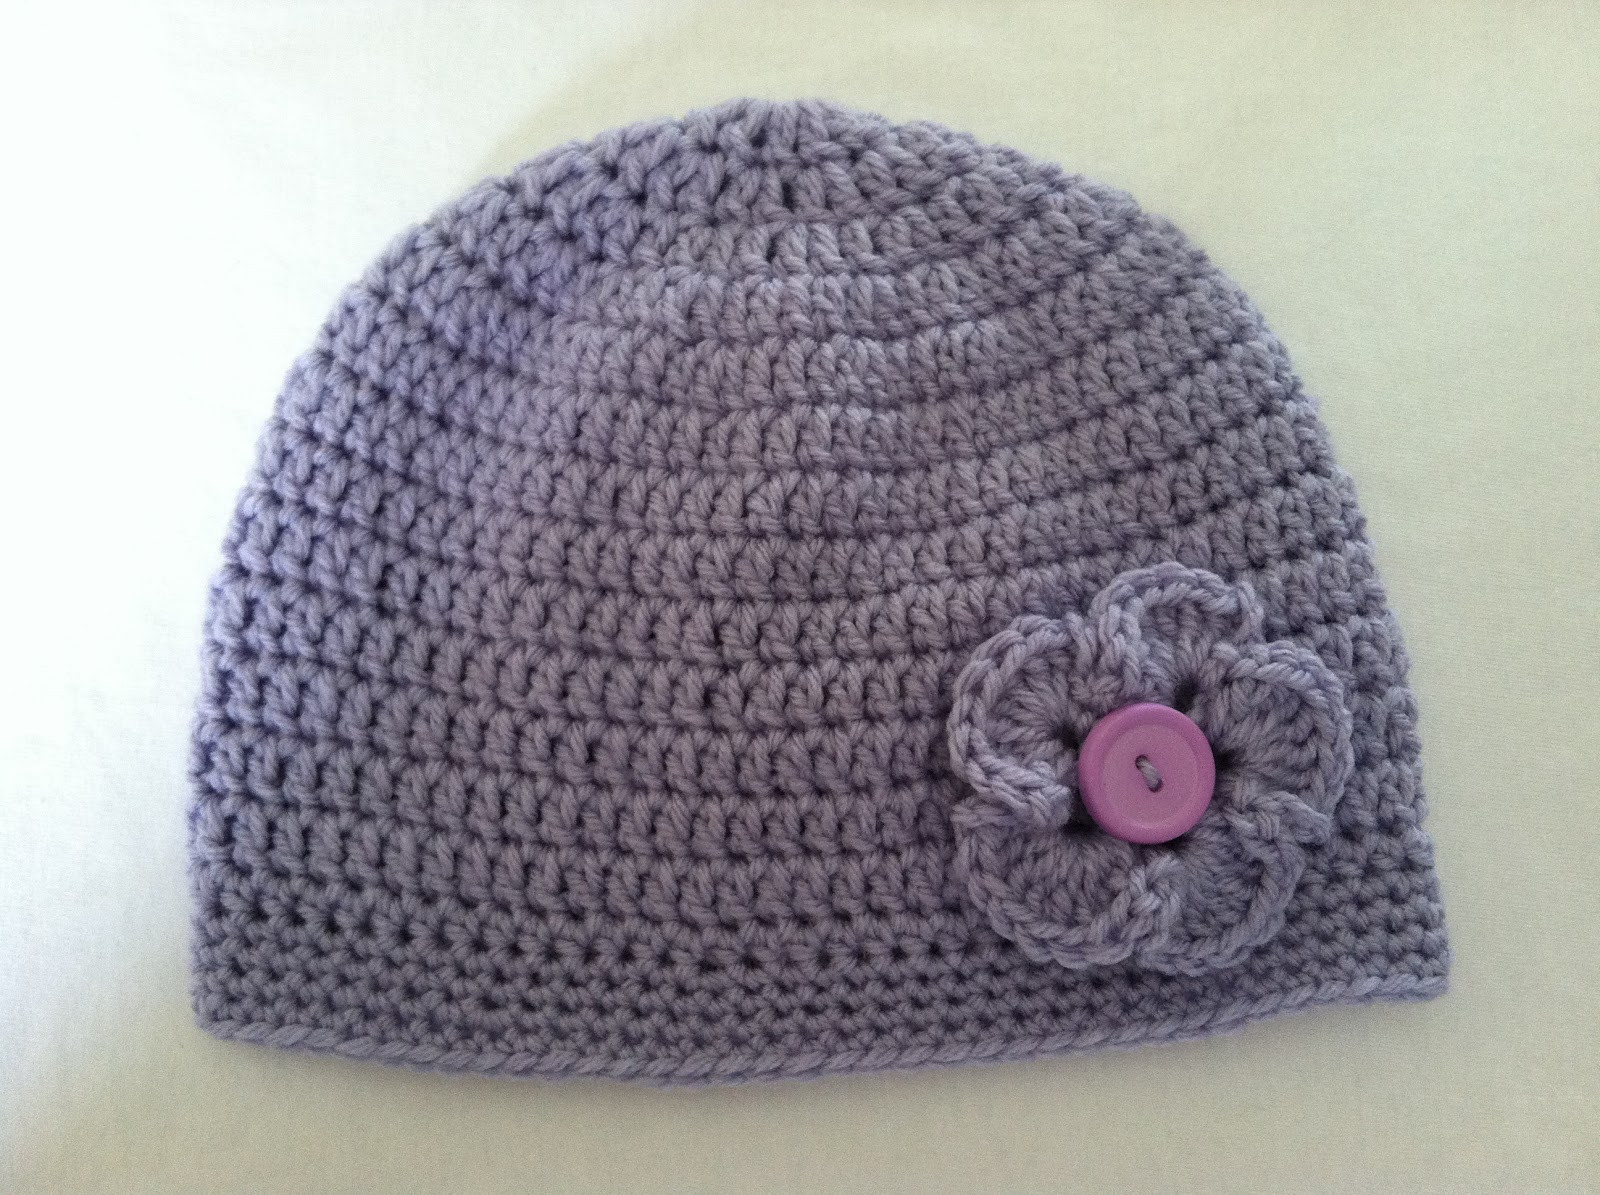 Free Crochet Chemo Hat Patterns Lovely Chemo Hat Free Knitting Pattern Of Awesome 43 Ideas Free Crochet Chemo Hat Patterns